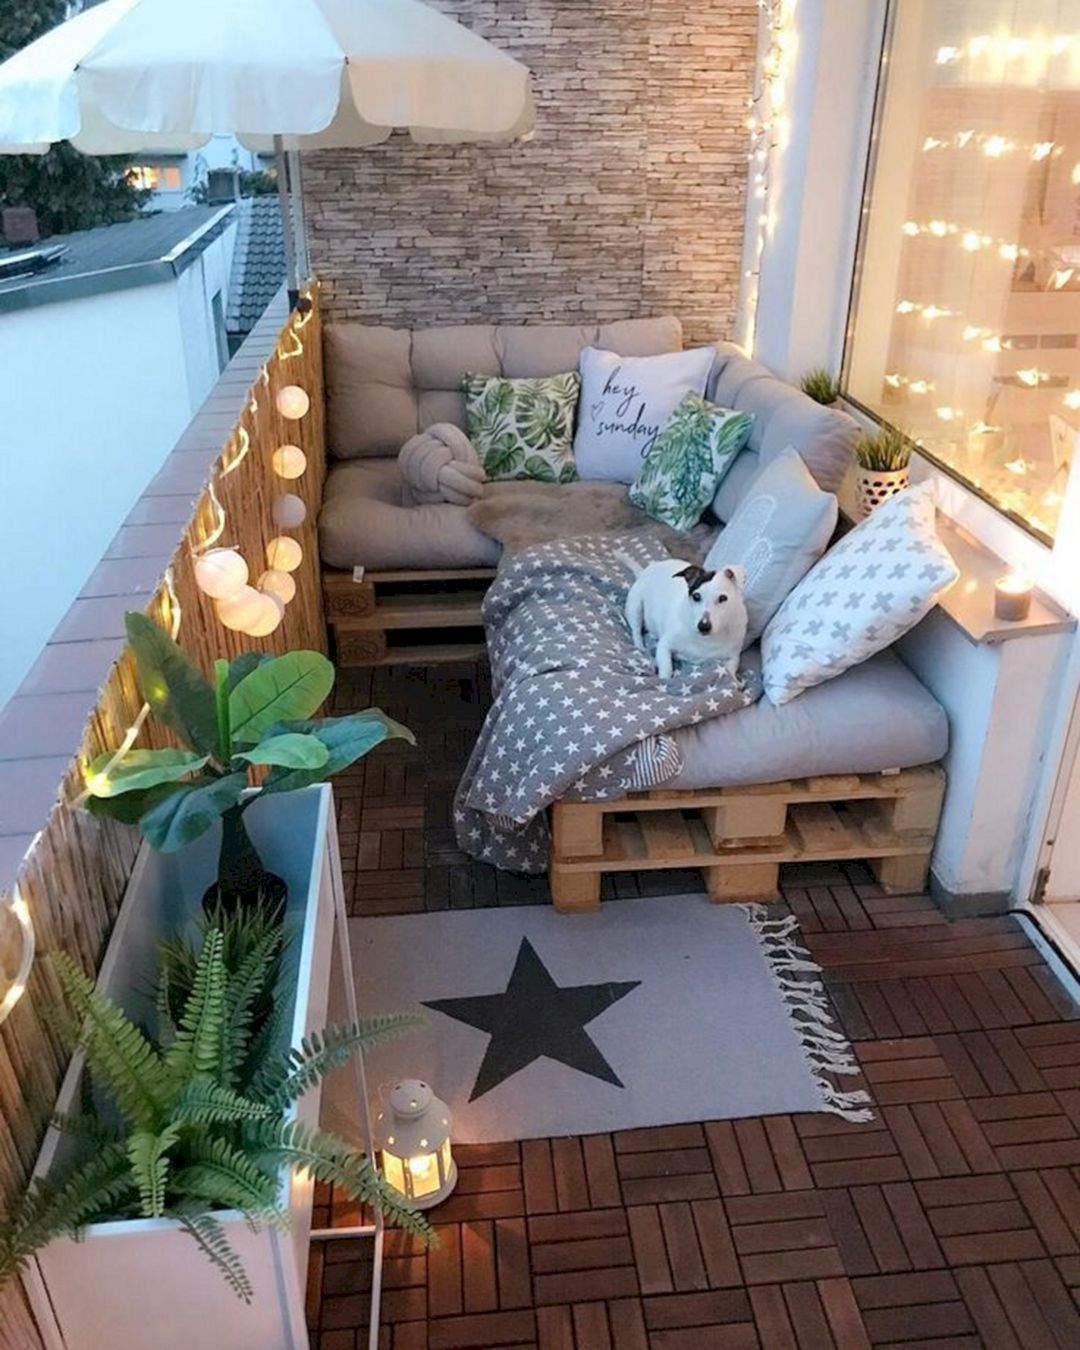 Top 10 Small Balcony Ideas For A Relaxing Place Get Rid Of Saturation Dexorate Apartment Balcony Decorating Balcony Decor Balcony Furniture